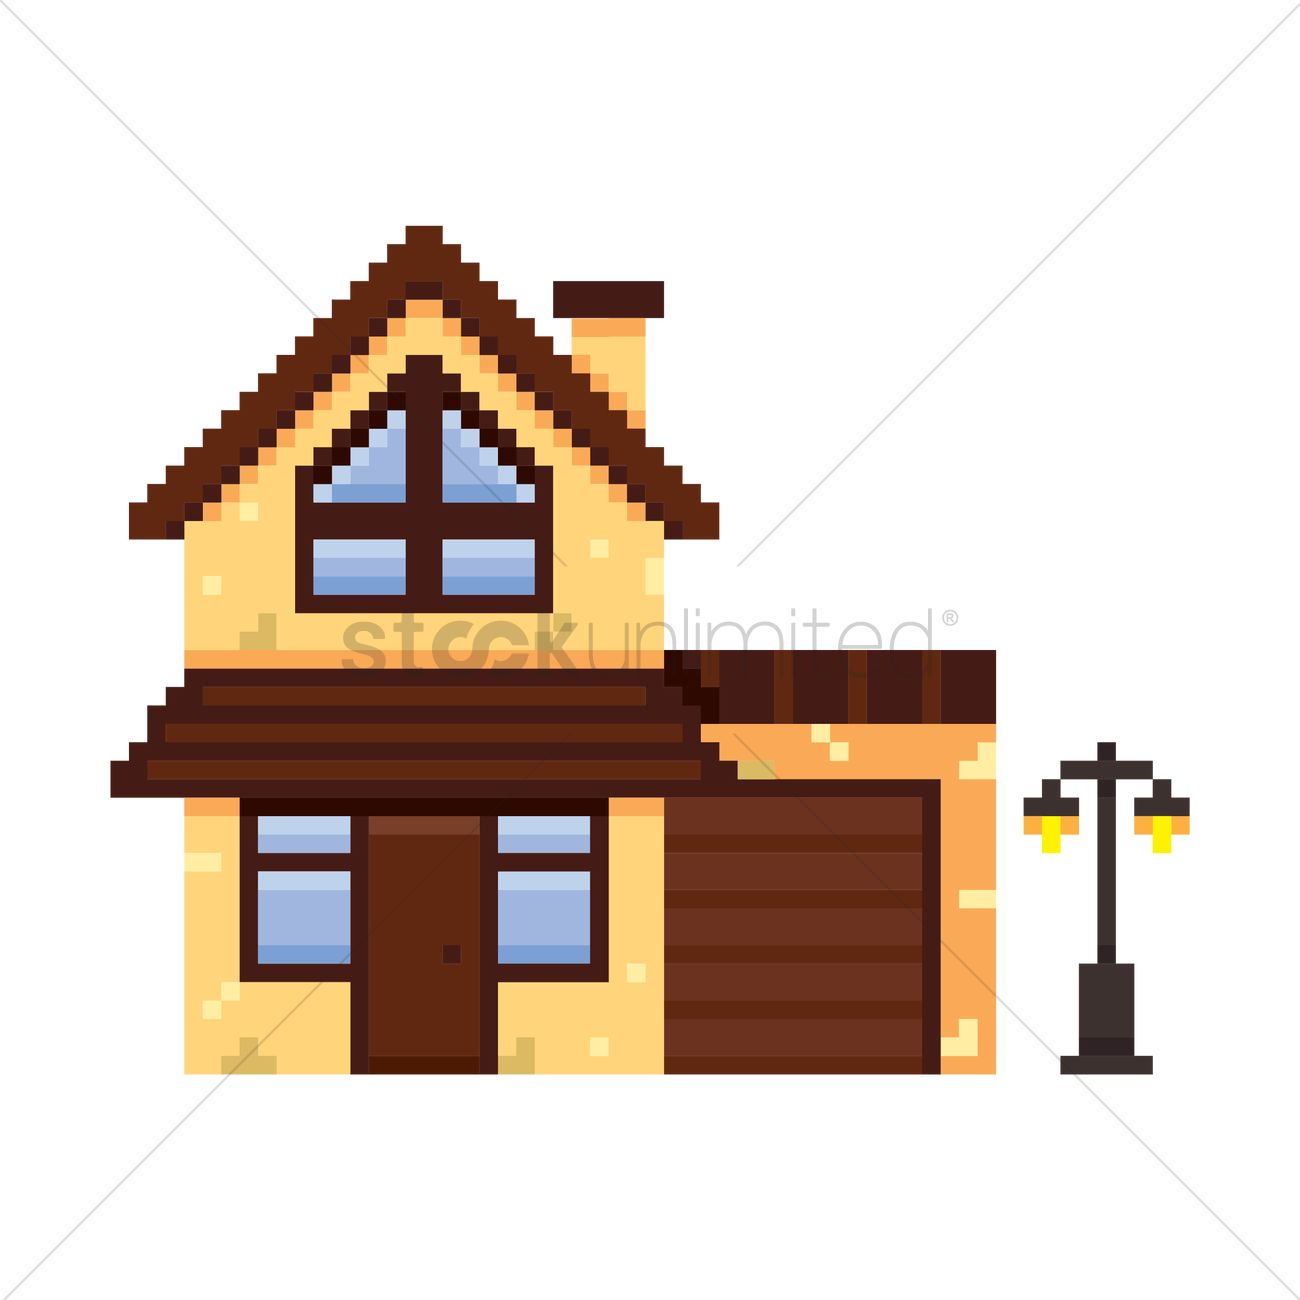 Architectural House Designs Pixel Art Building Vector Image 1957773 Stockunlimited